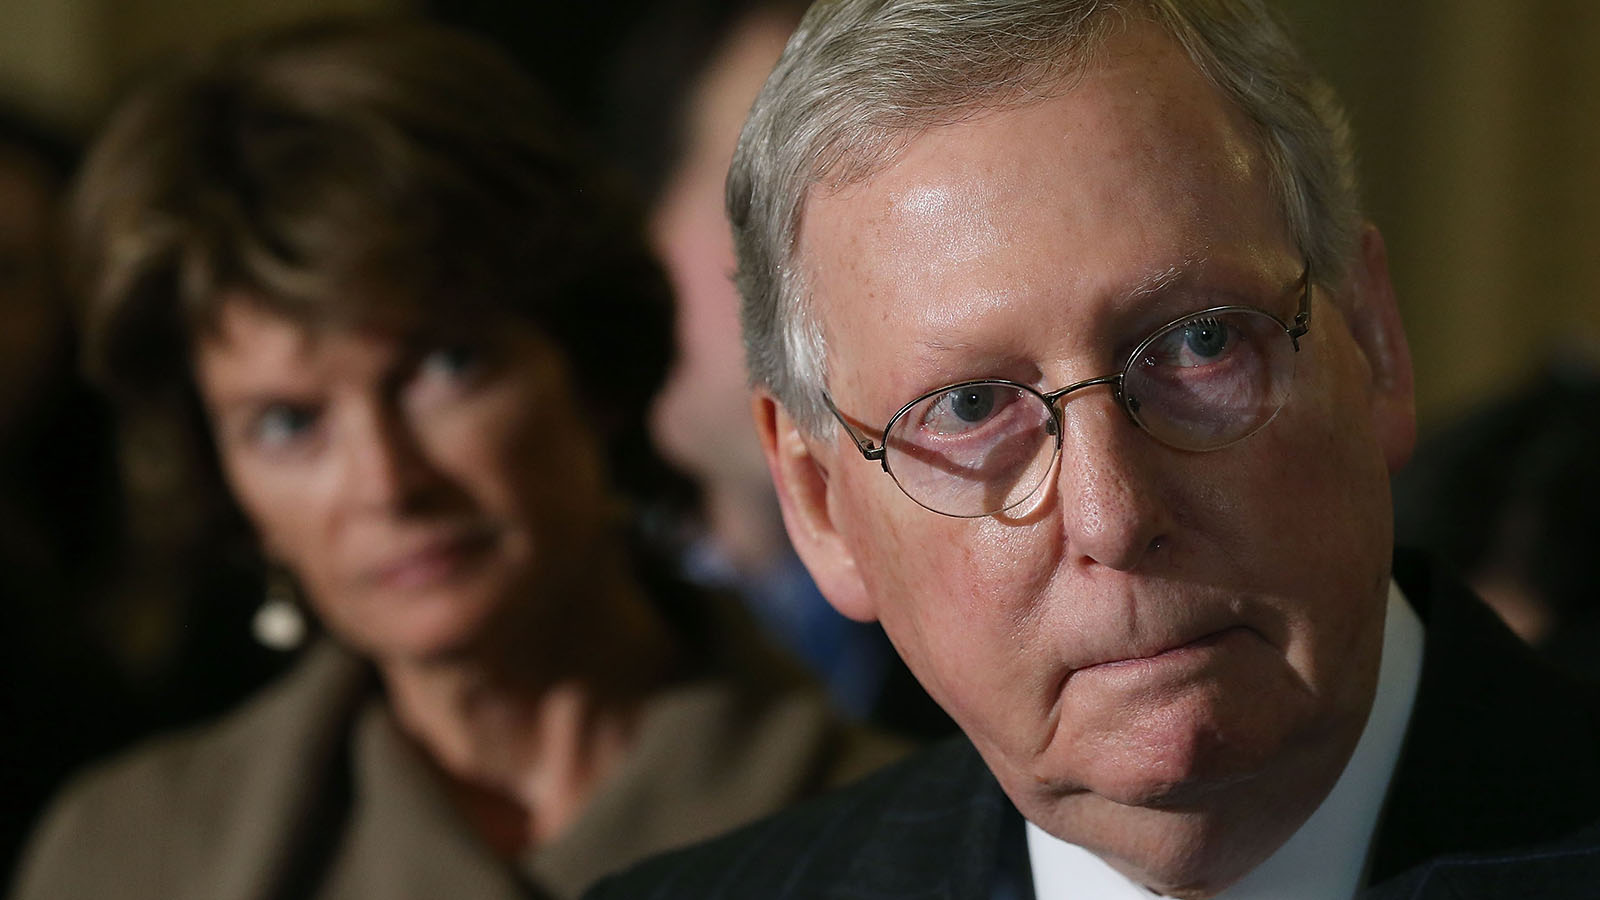 McConnell says the GOP will back Murkowski's reelection despite Trump threat